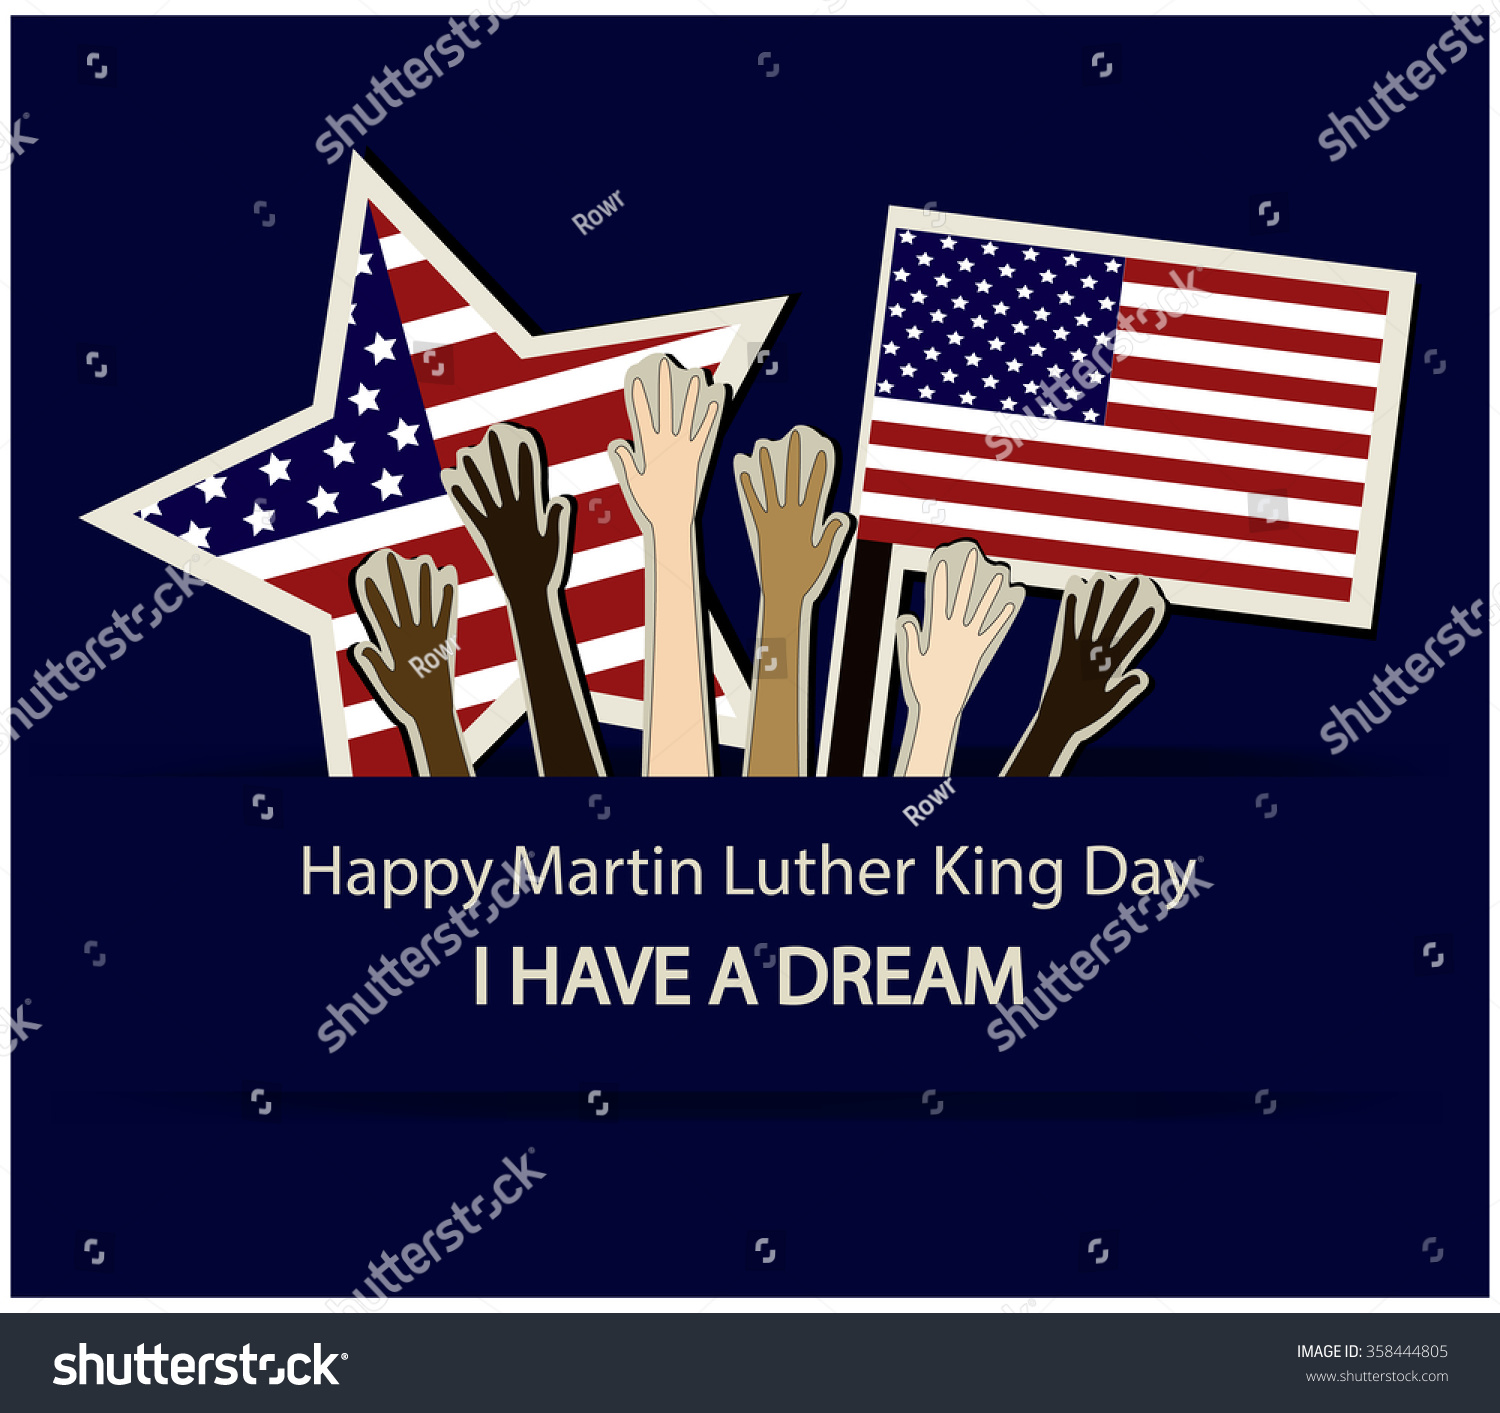 Happy Martin Luther King Day Card Stock Vector Royalty Free